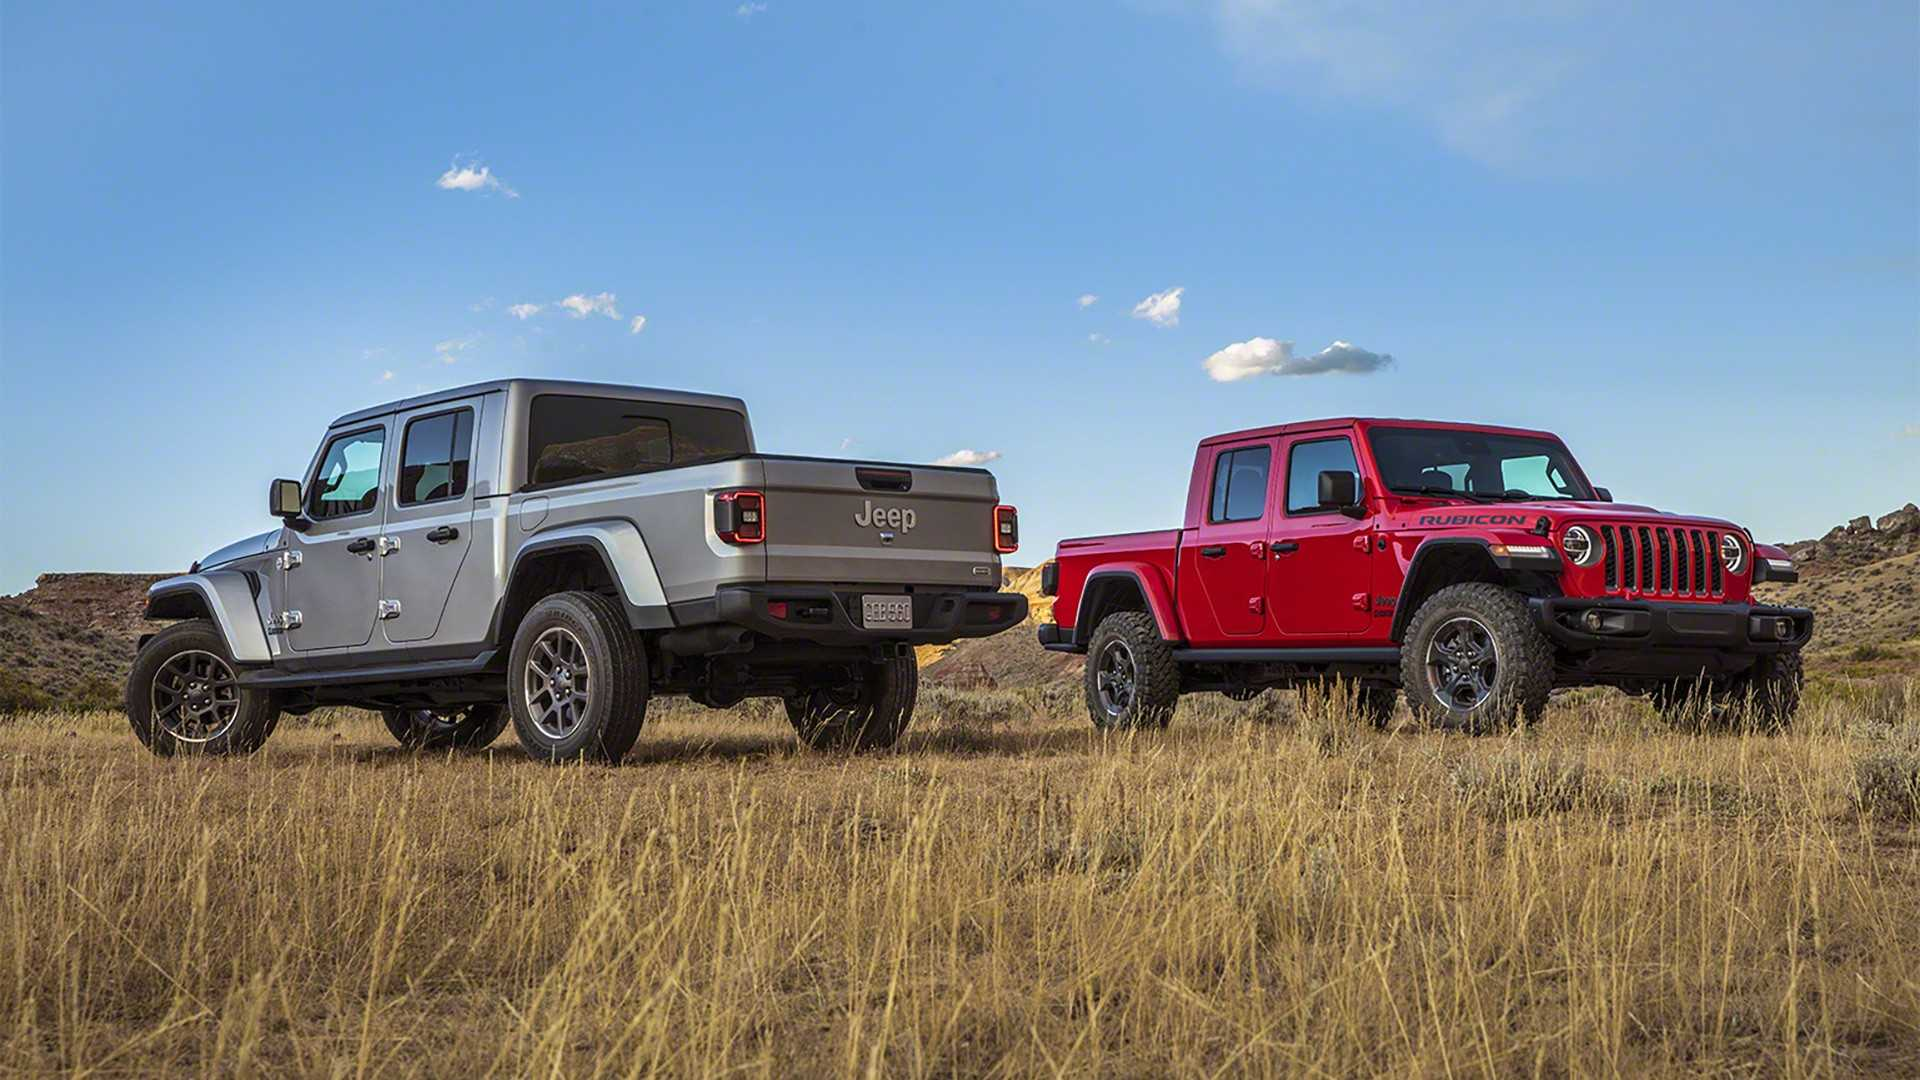 Jeep Towing Capacity >> 2020 Jeep Gladiator Goes Official With Best-In-Class Towing Capacity - autoevolution